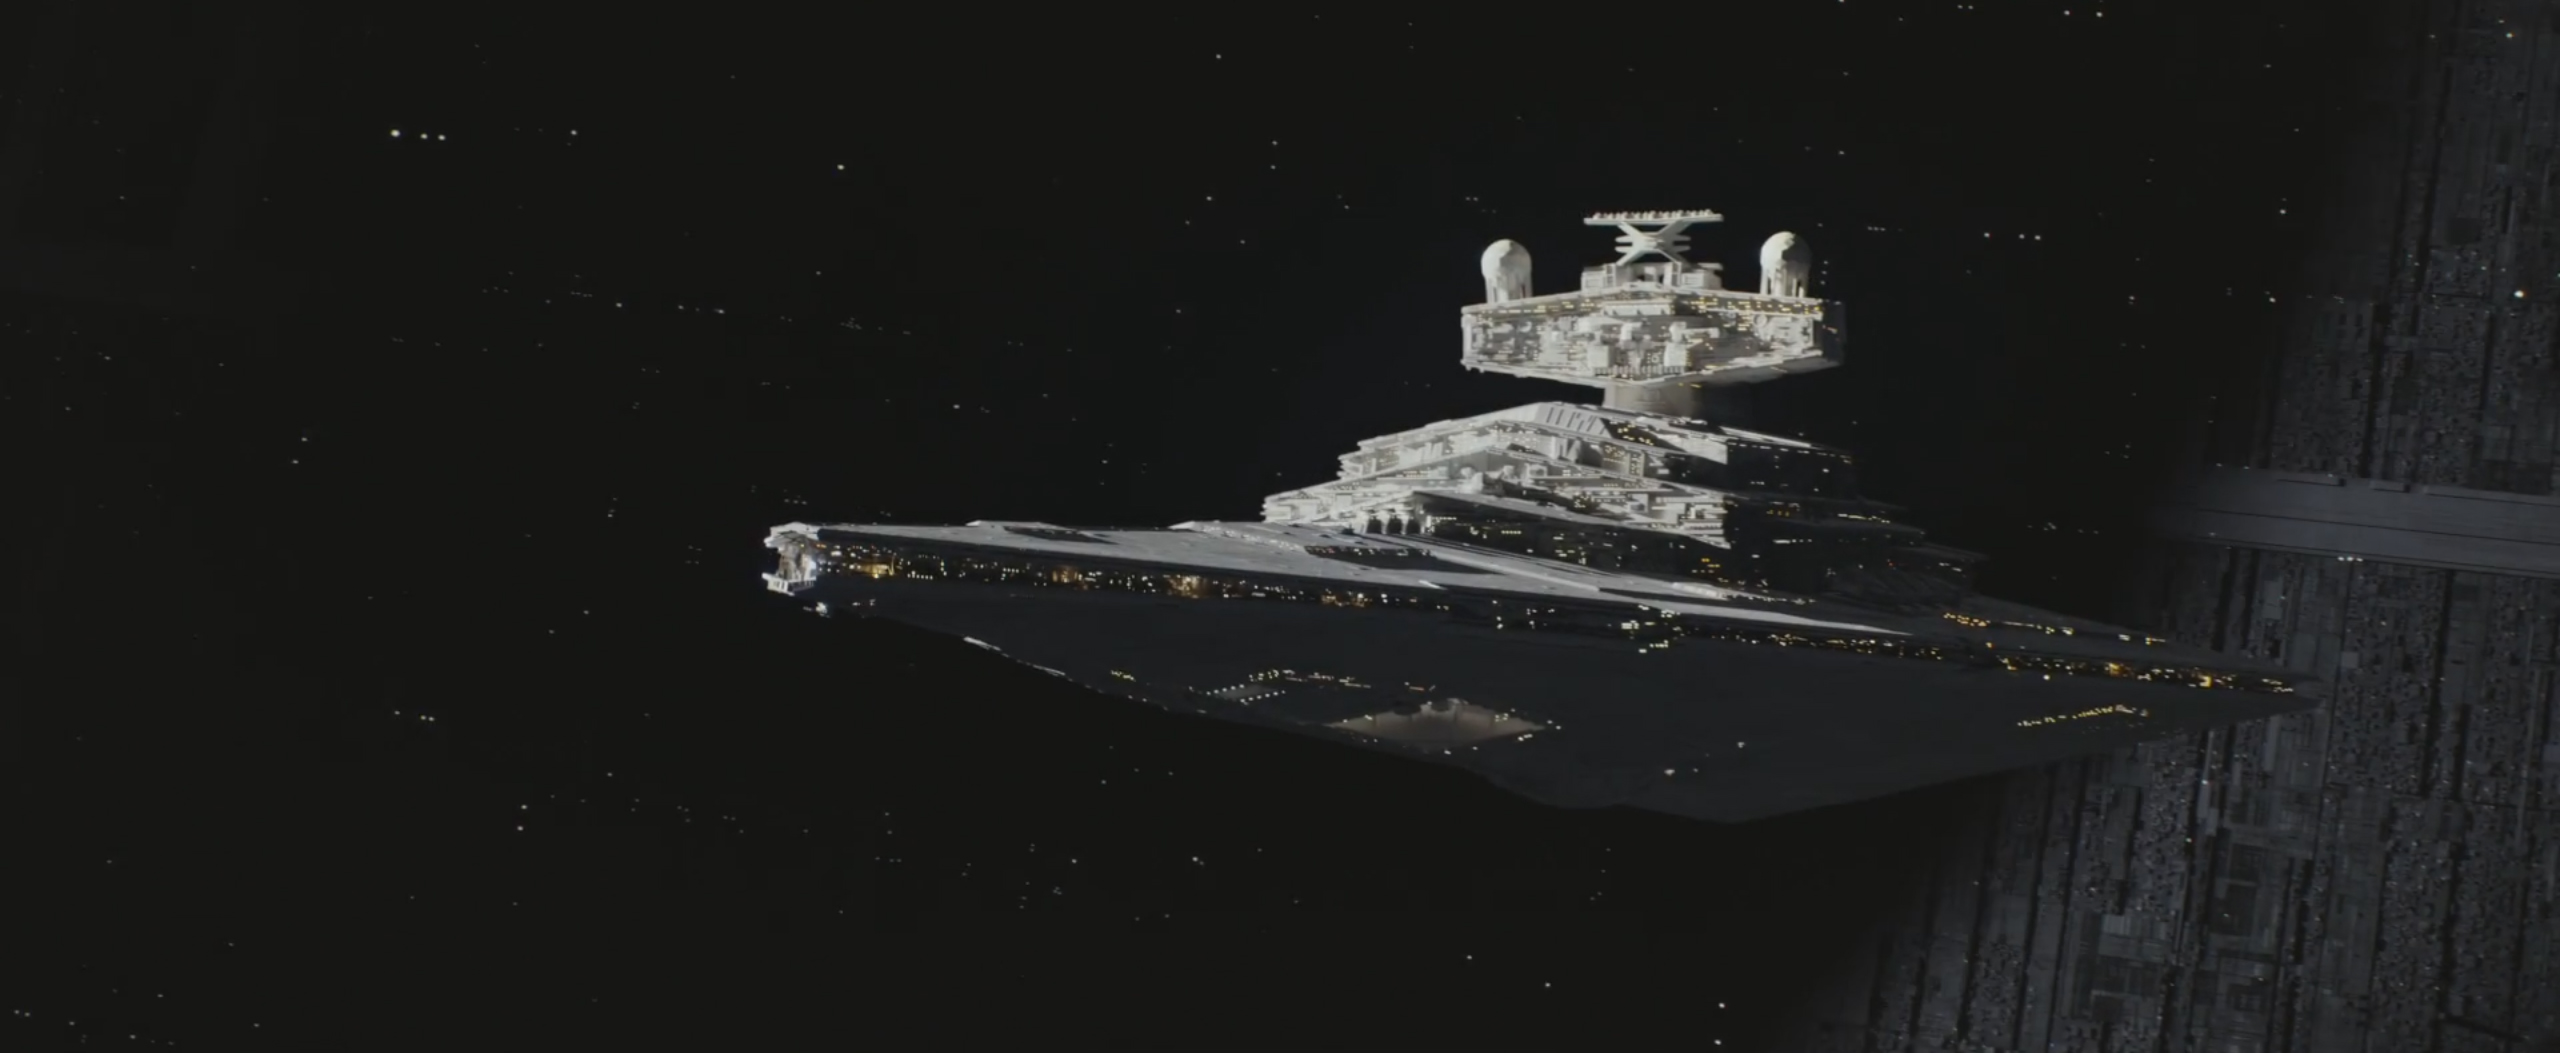 rogue one a star wars story trailer breakdown high res images 13